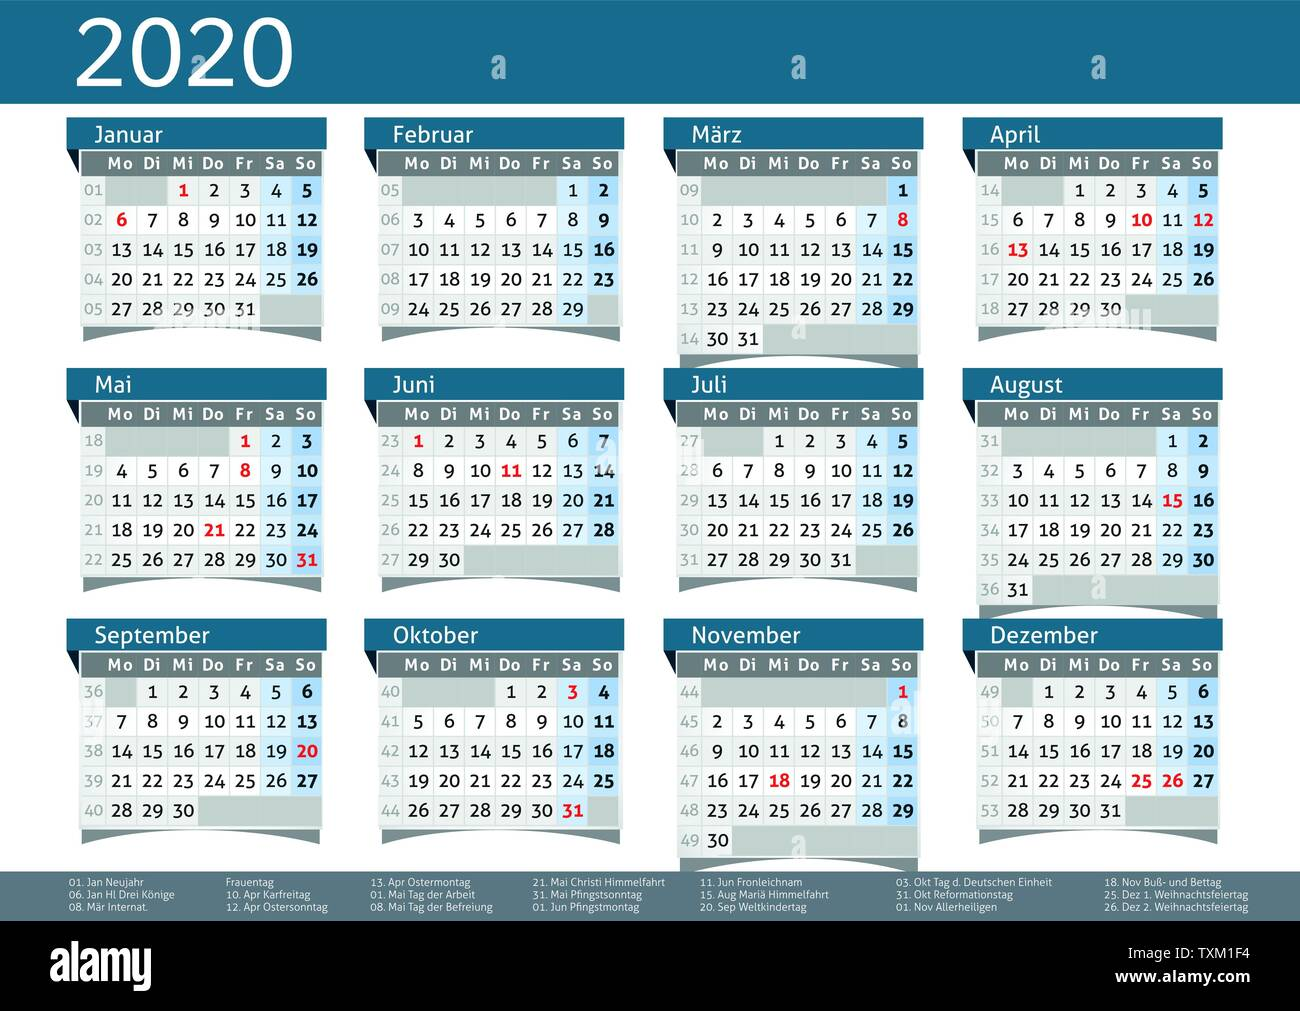 Calendario 2020 Tascabile.Calendario Tascabile 2019 Immagini Calendario Tascabile